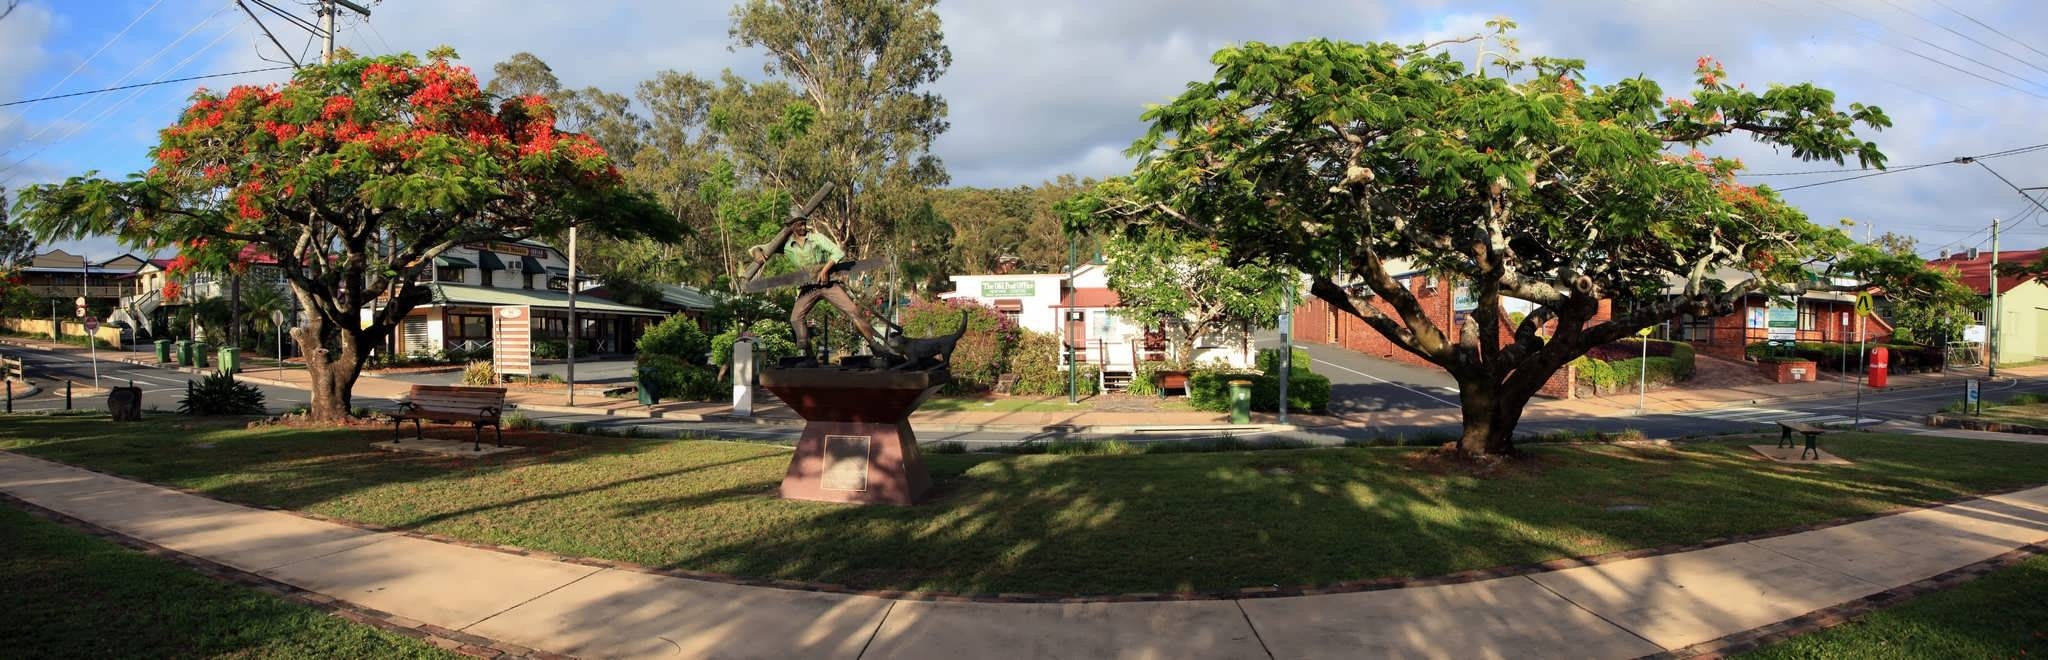 Mudgeeraba QLD Australia 15th Dec 2012